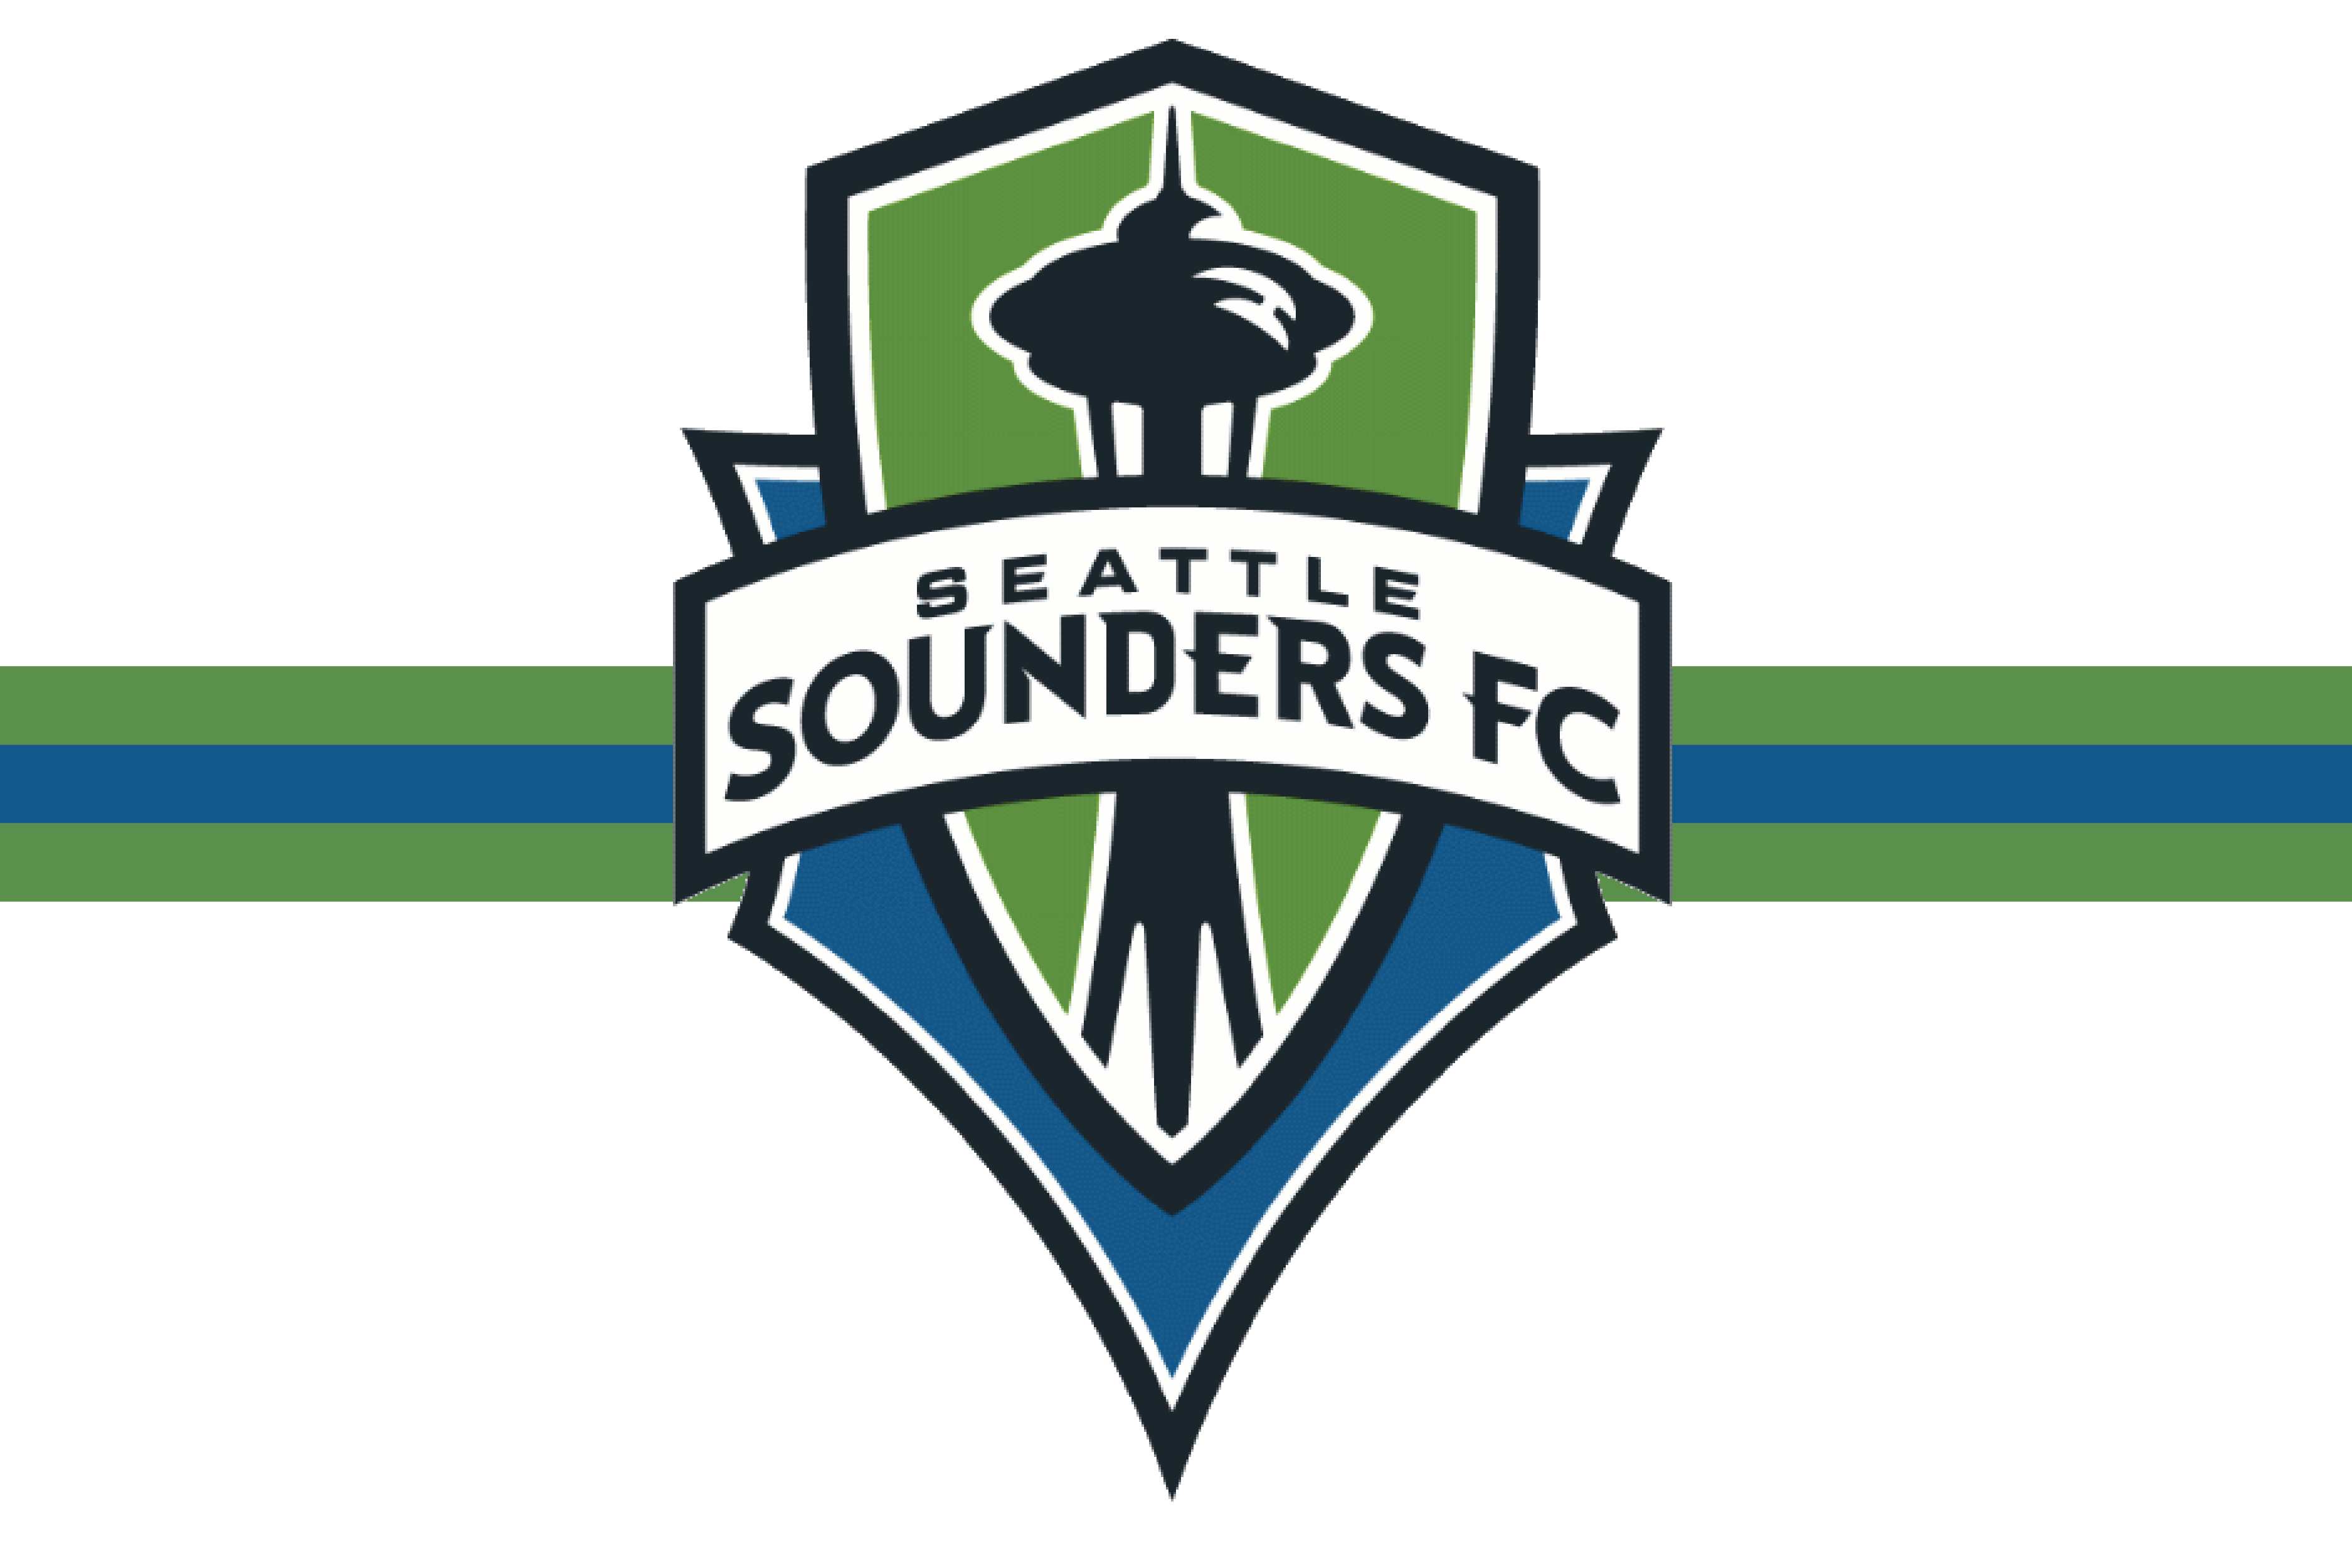 Seattle Sounders Fc PNG-PlusPNG.com-3750 - Seattle Sounders Fc PNG